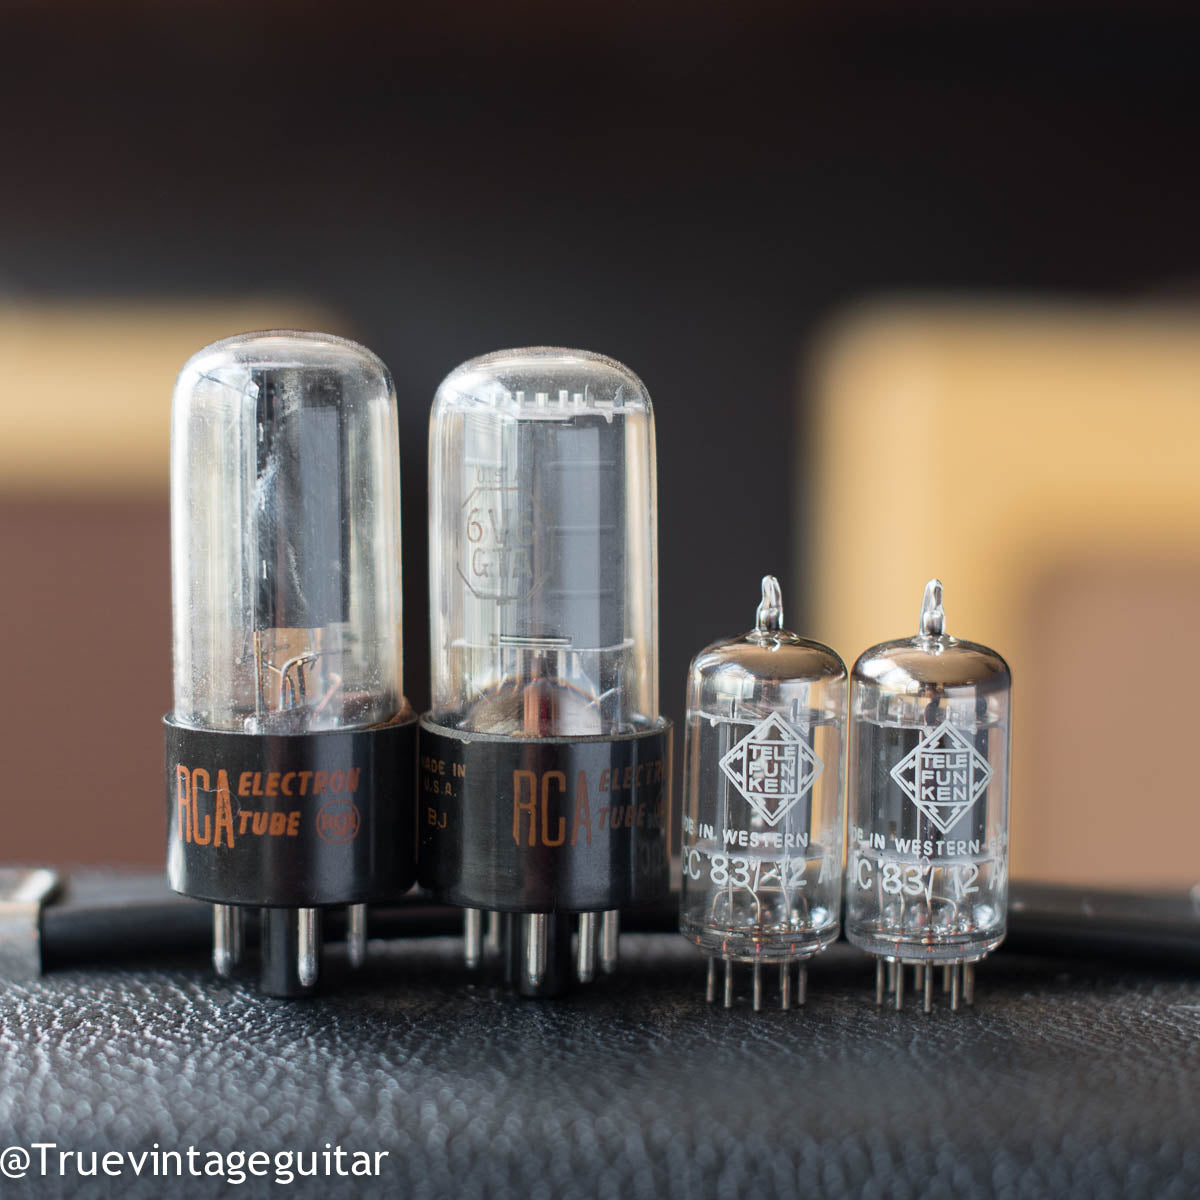 Original RCA and Telefunken tubes, Fender Vibro Champ